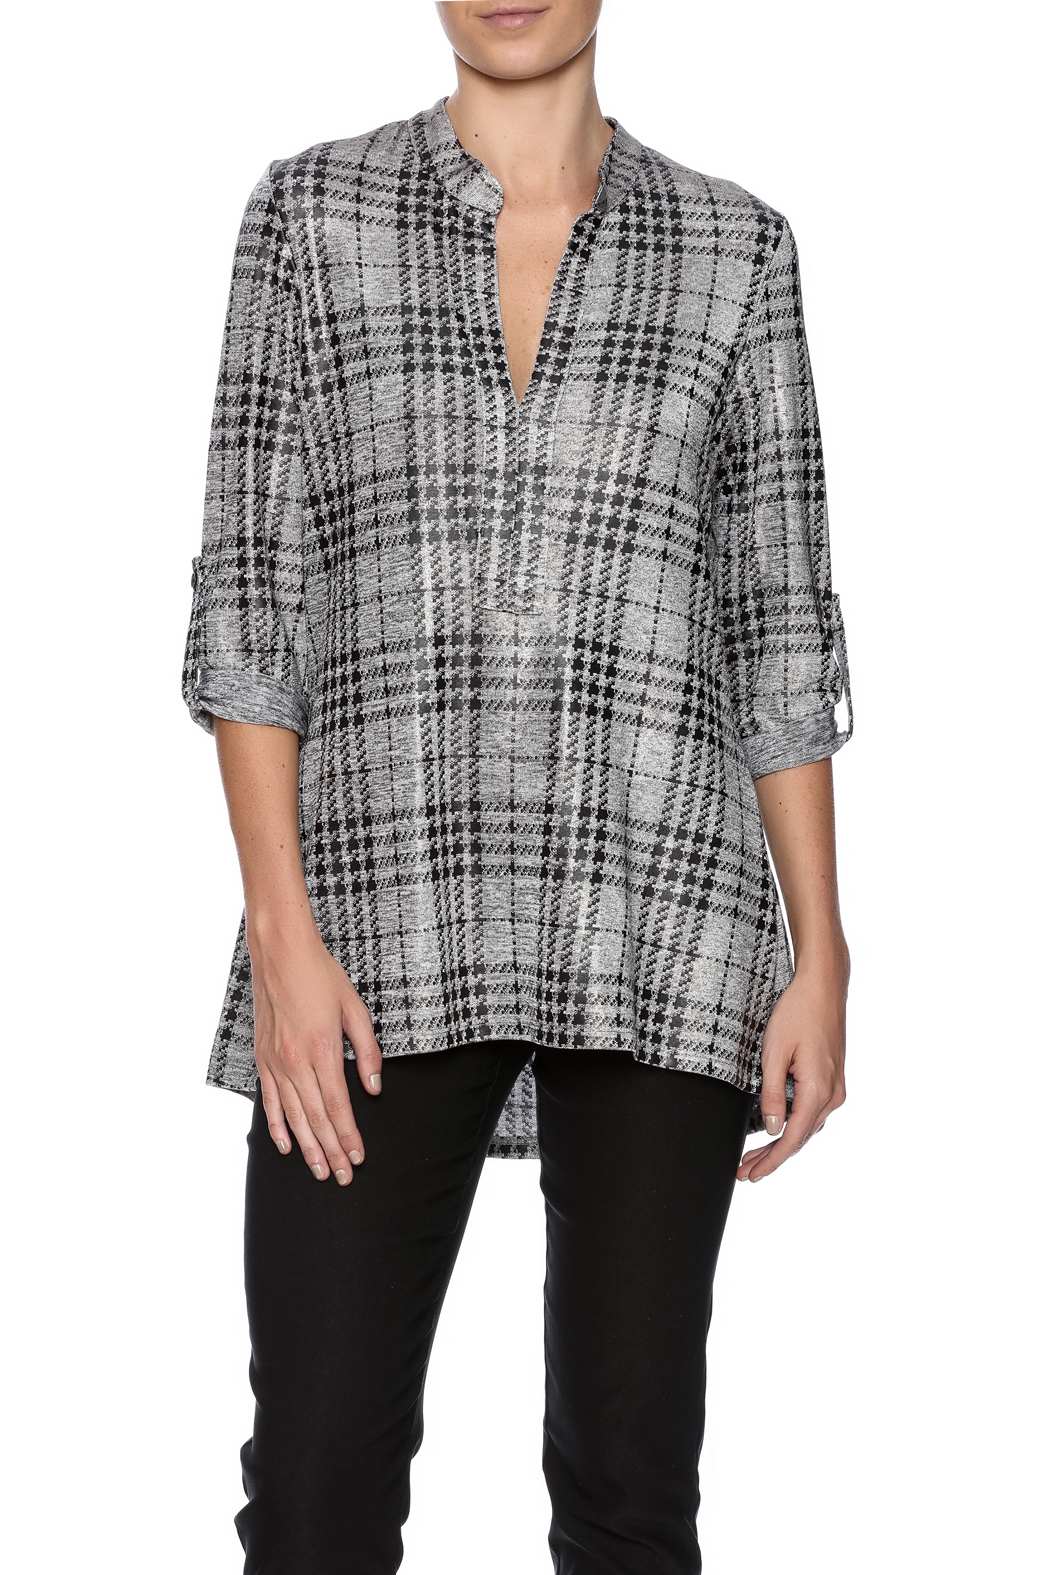 Boho Chic Houndstooth Top - Main Image